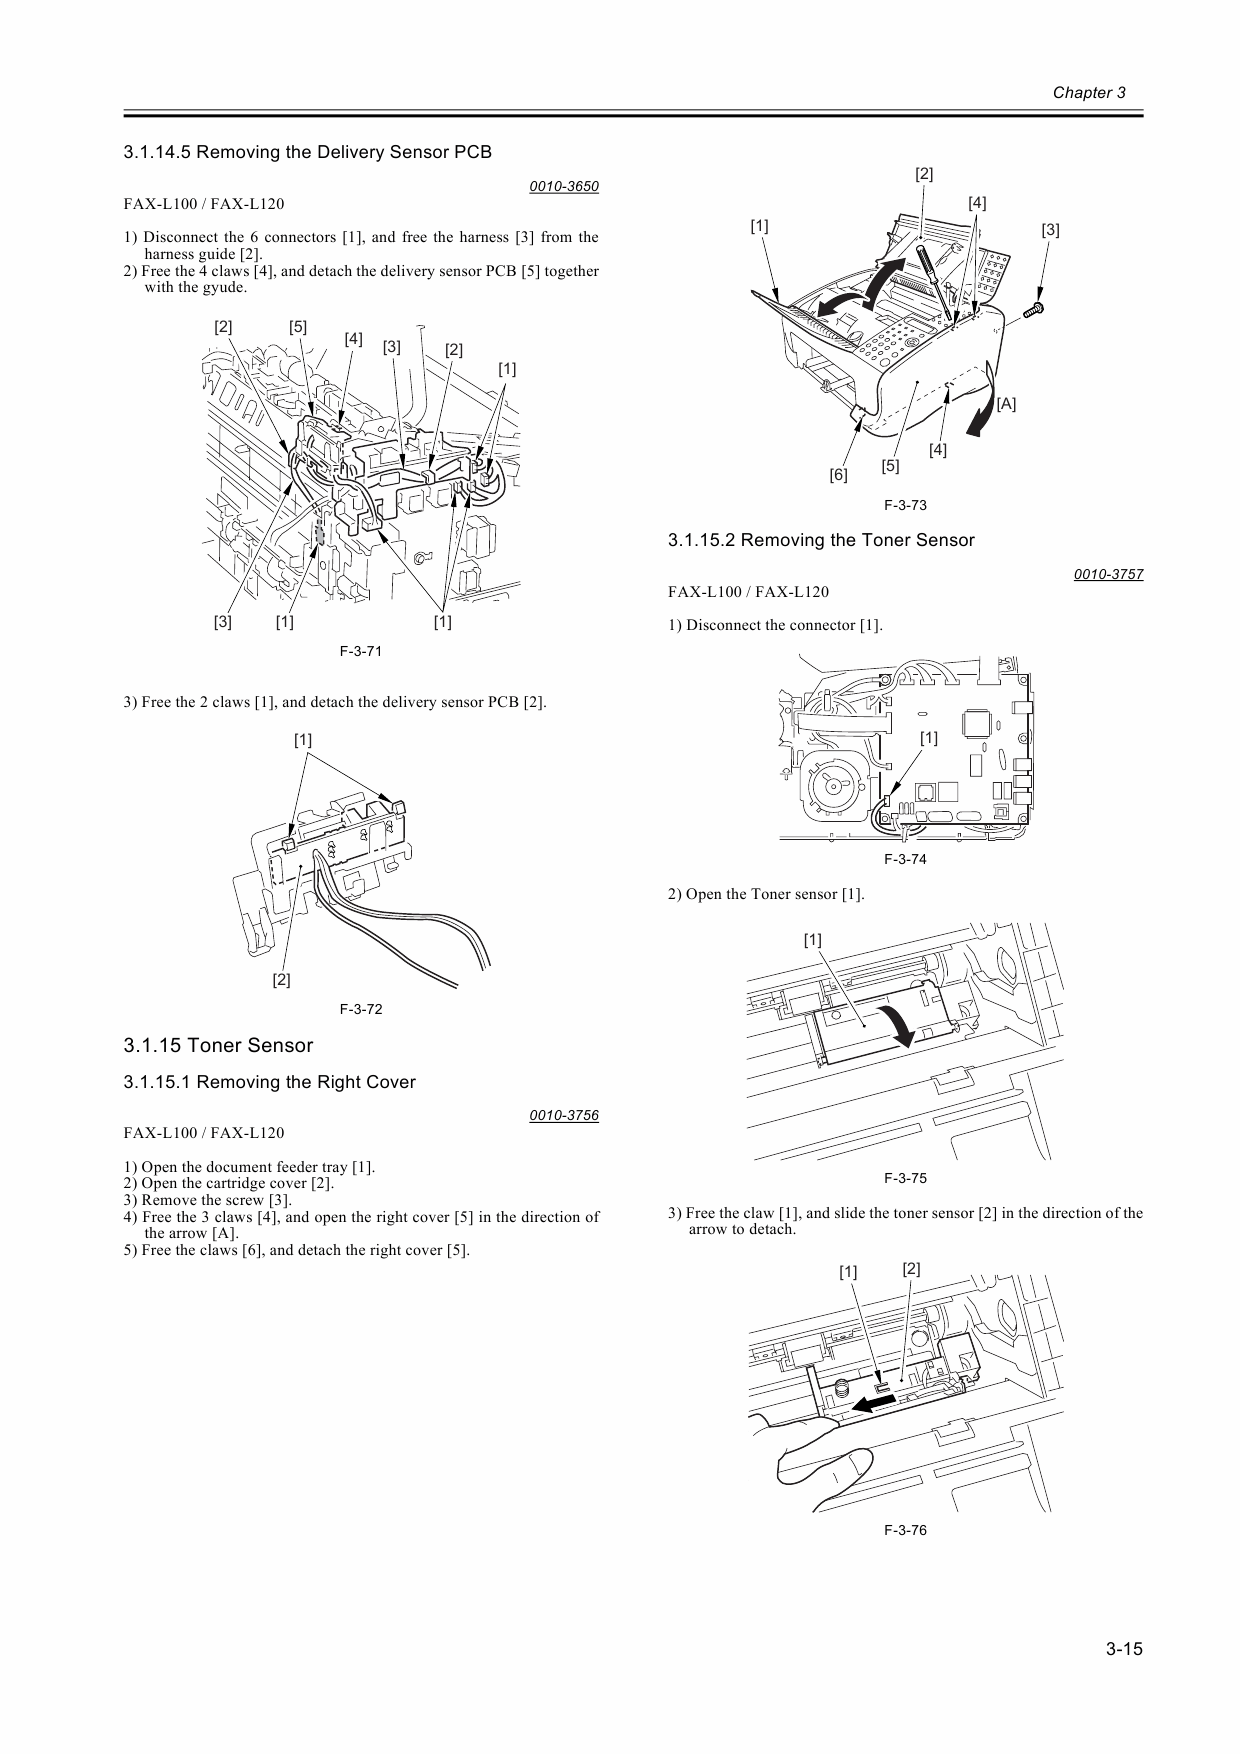 Canon Fax L100 L120 Parts And Service Manual